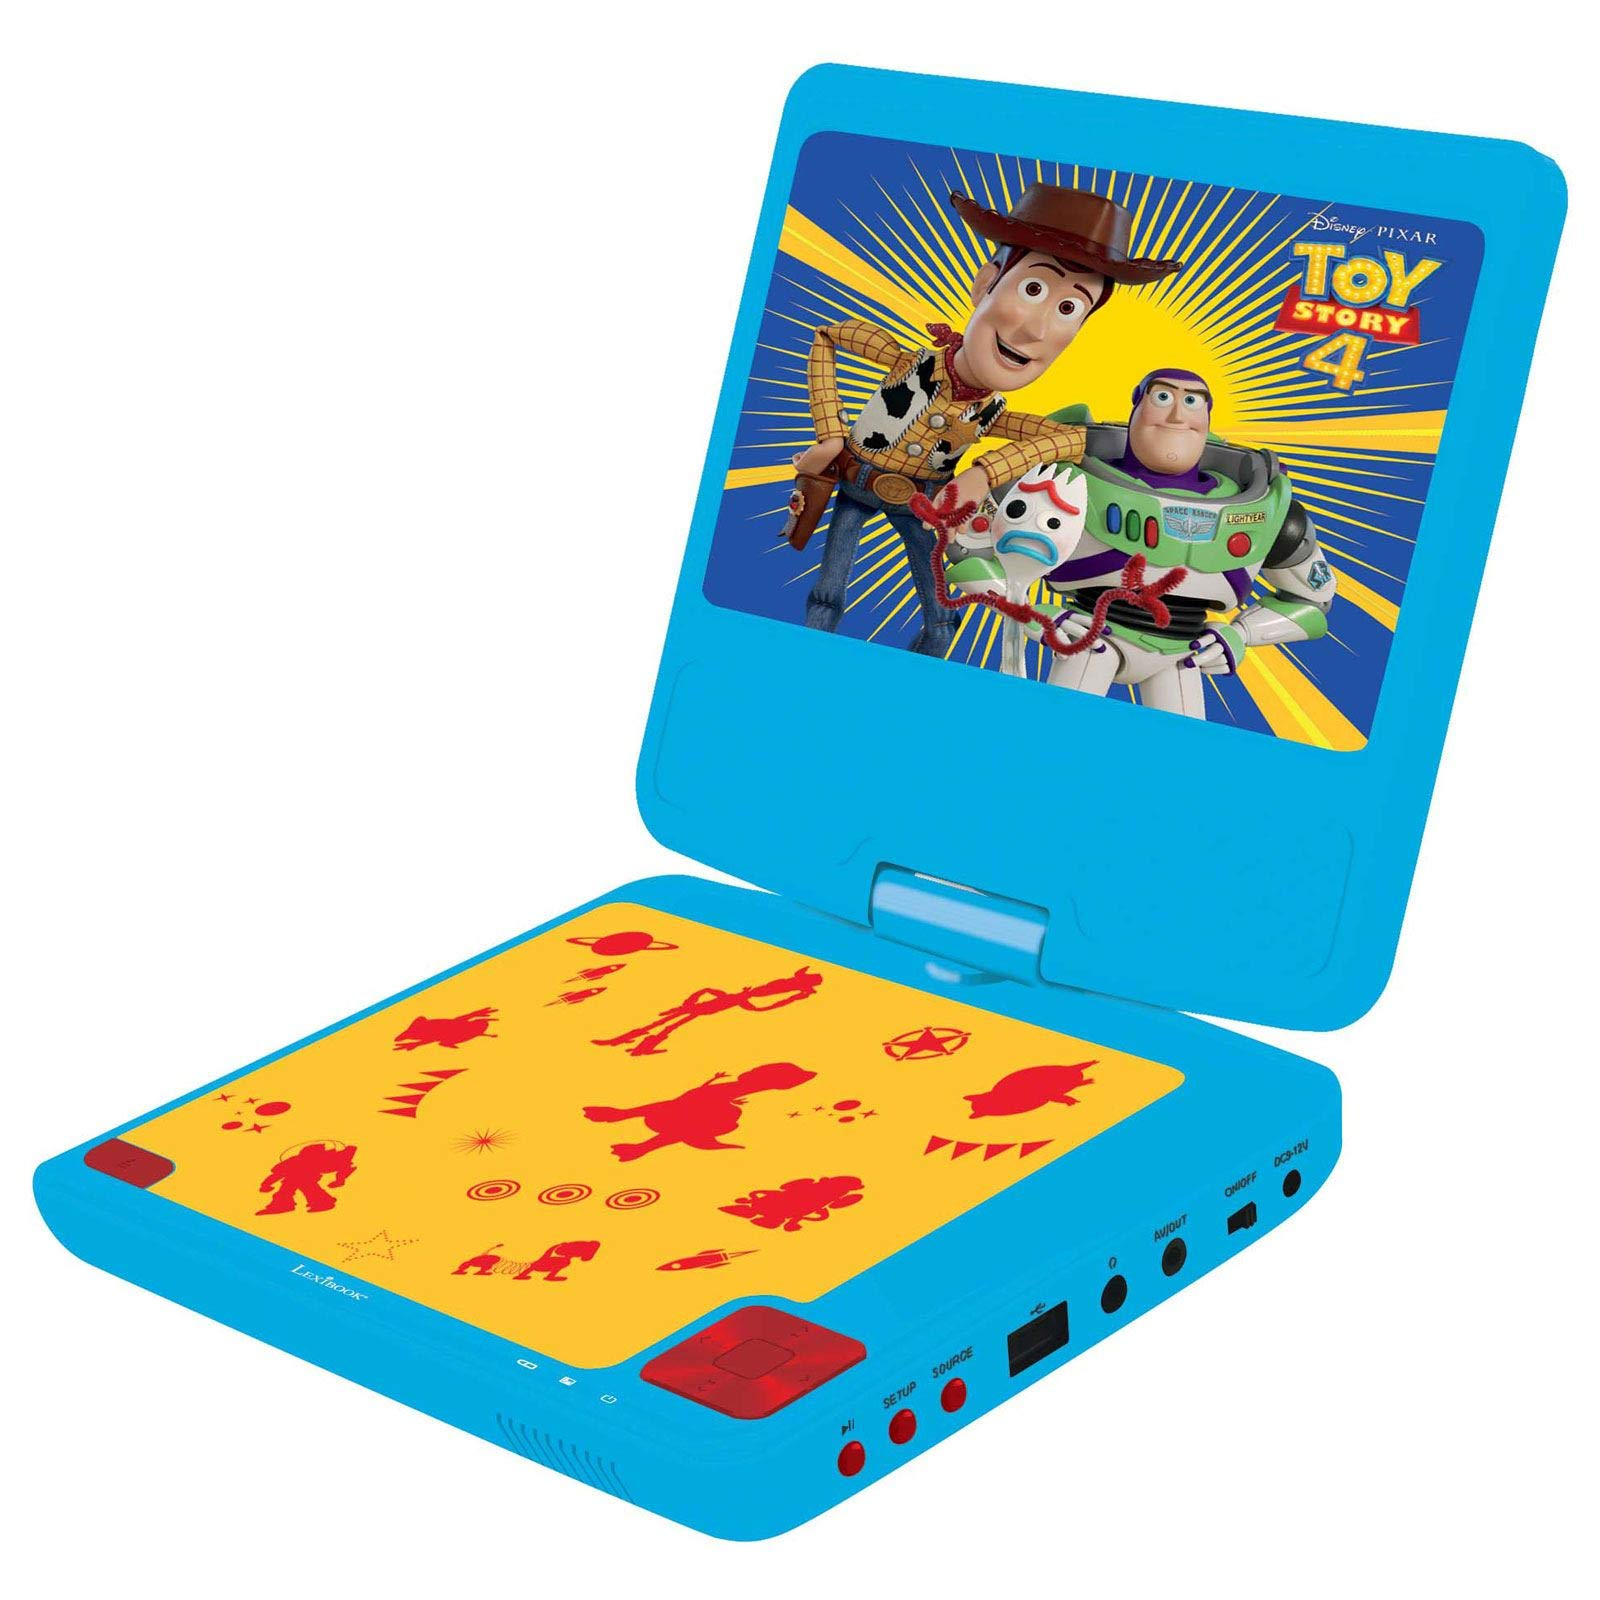 Toy Story 4 Portable DVD Player by Toy Story (Image #1)